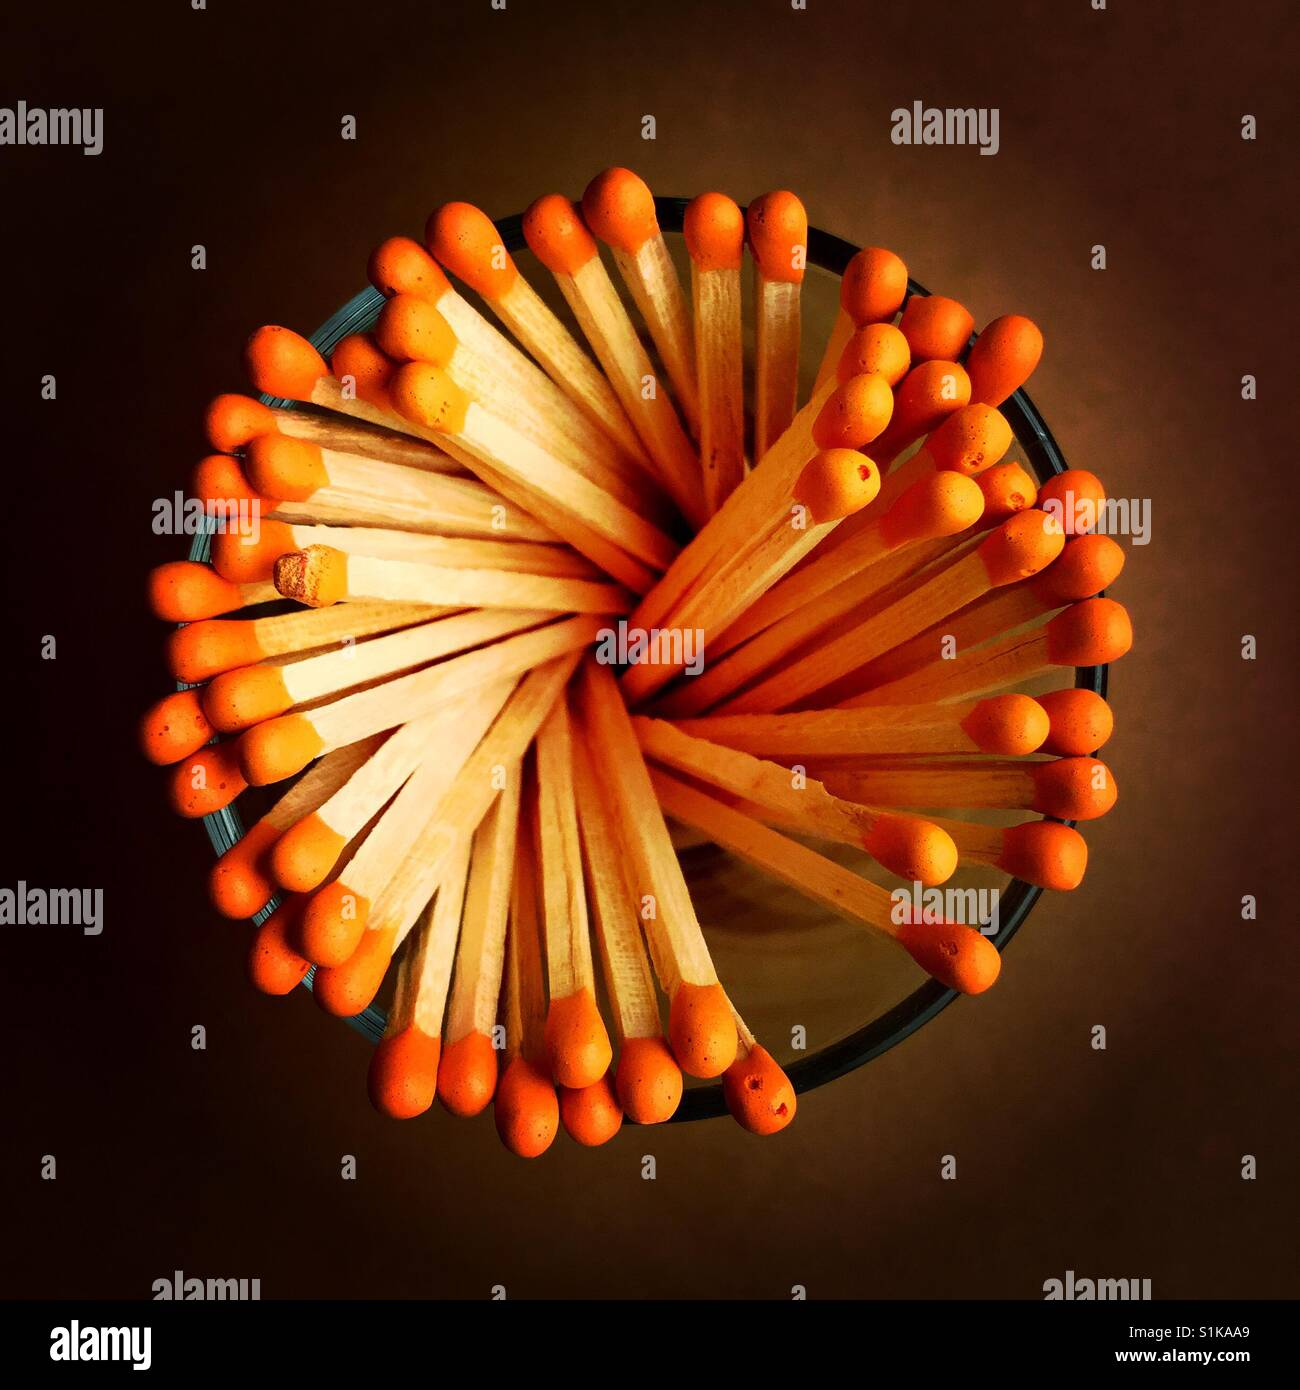 An overhead shot of a bunch of matchsticks in a glass container - Stock Image